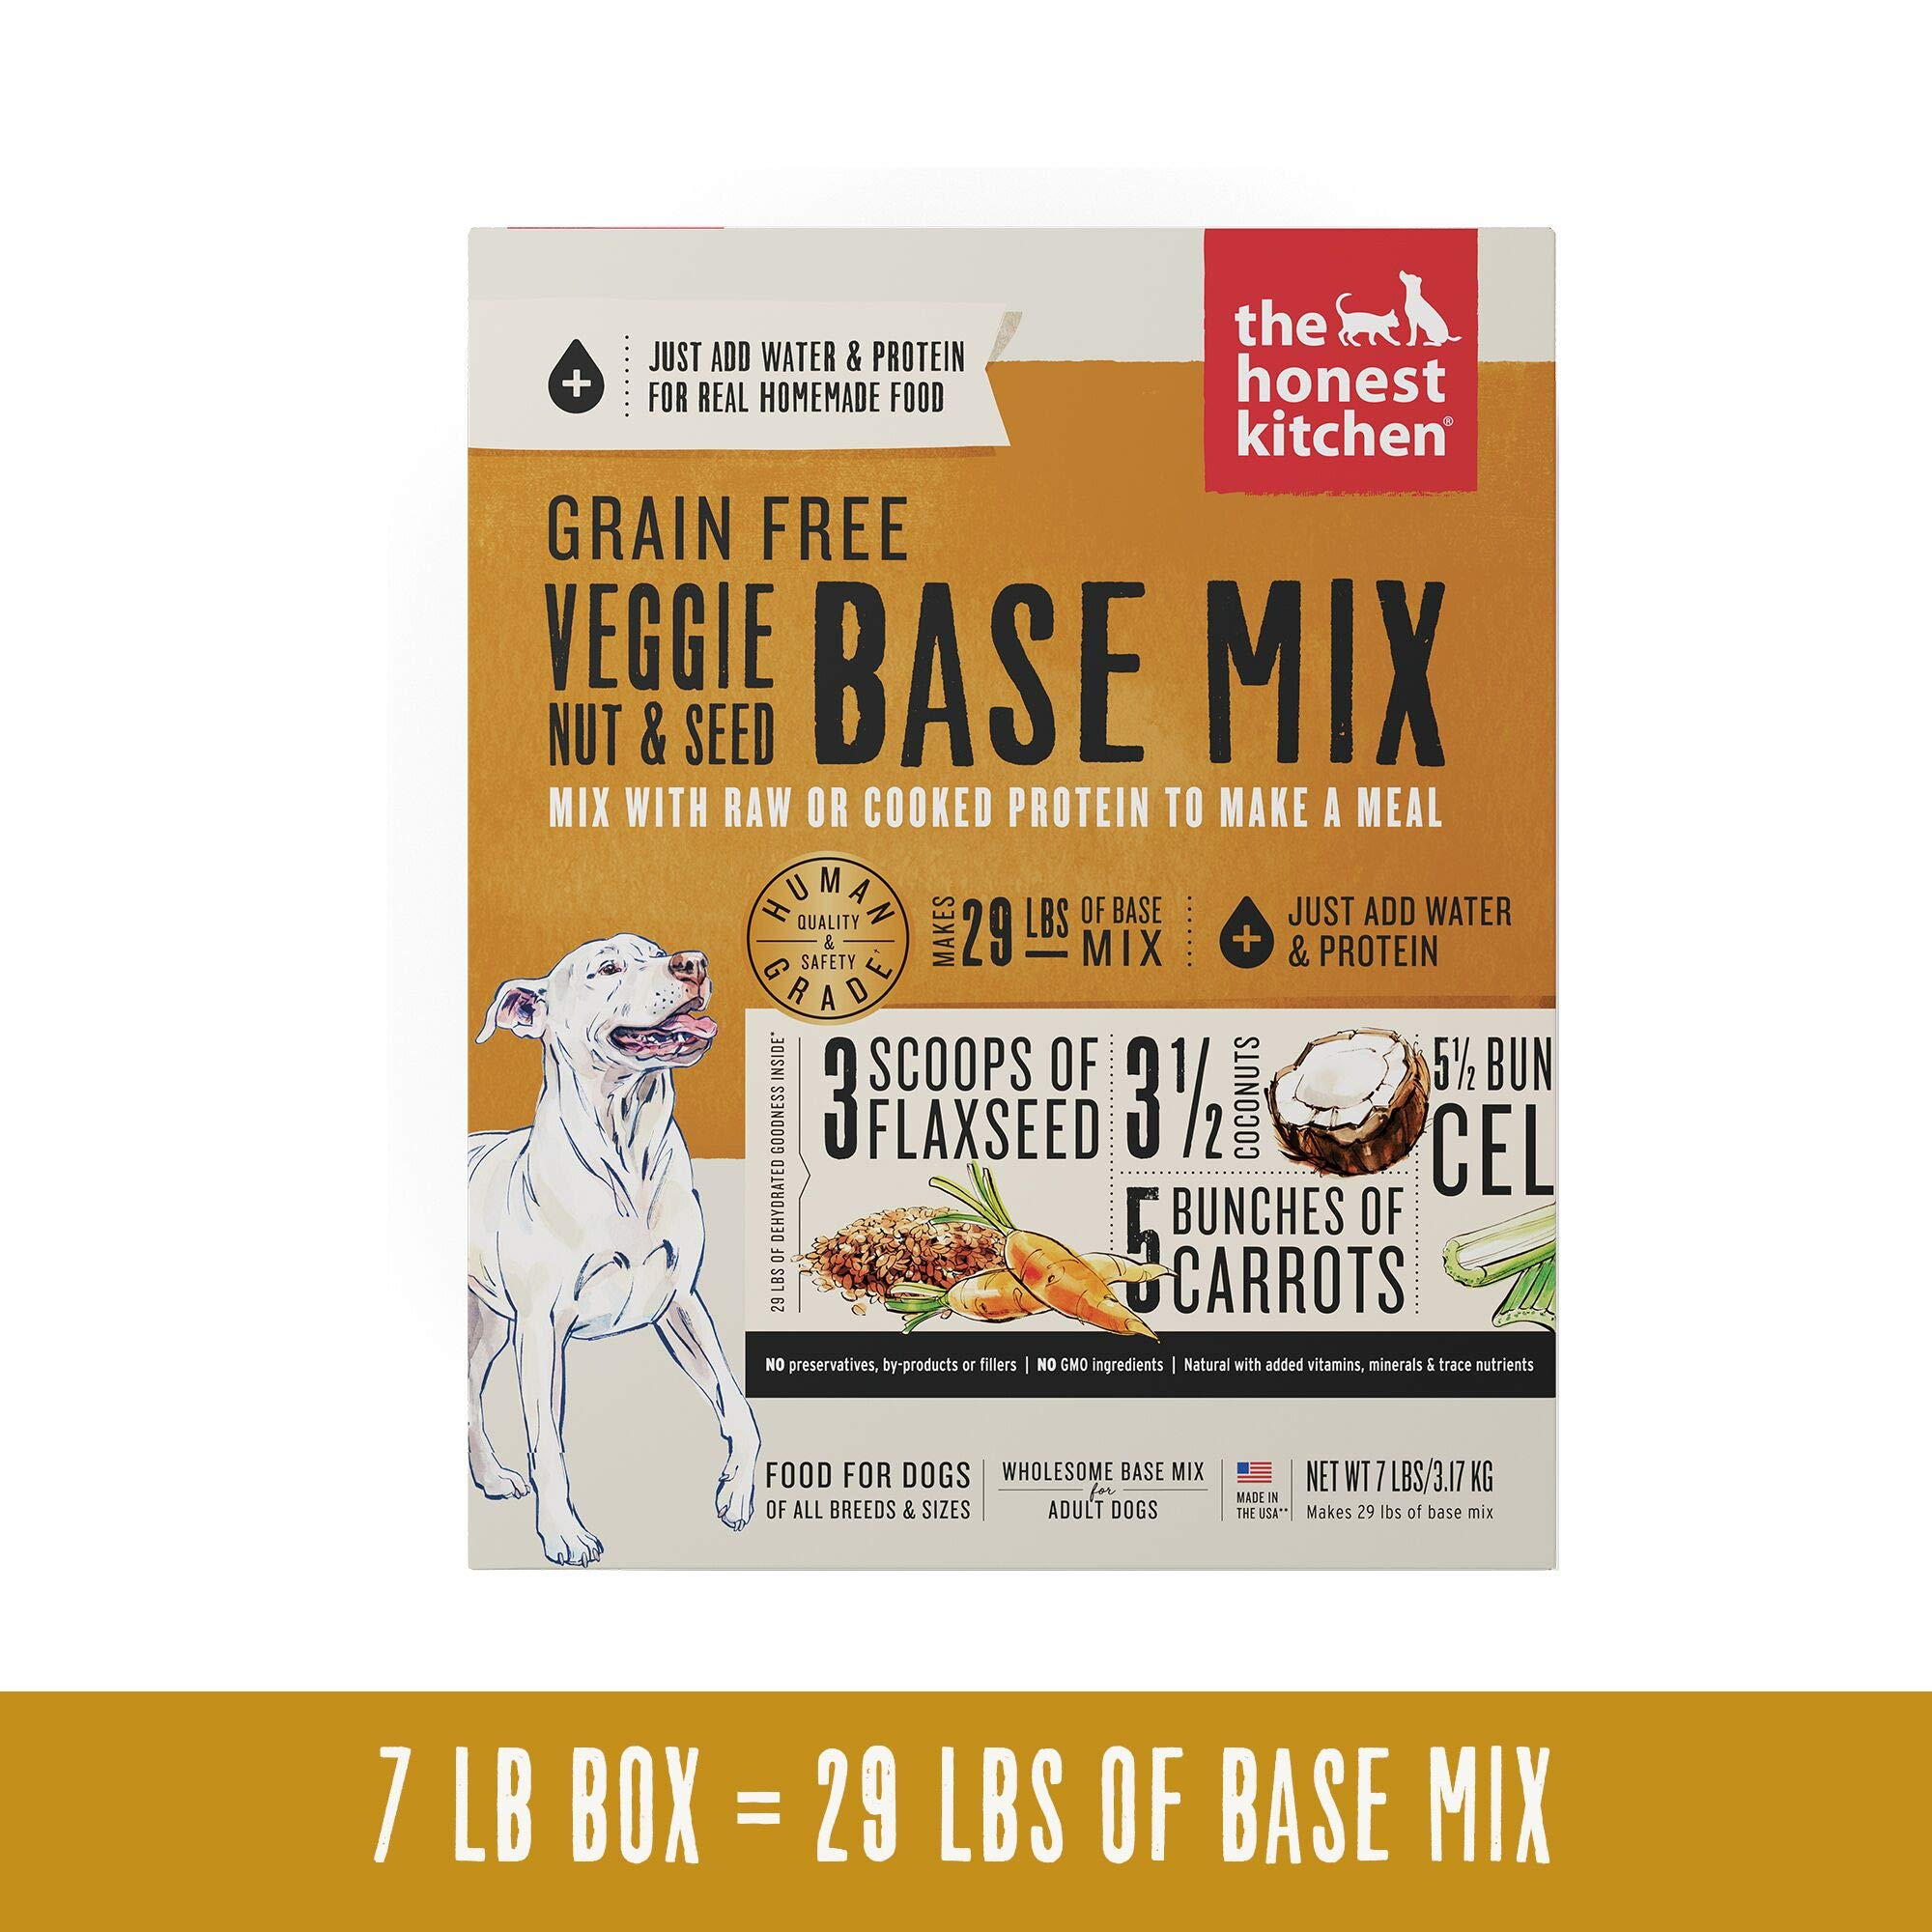 The Honest Kitchen Grain Free Veggie, Nut & Seed Base Mix Recipe for Dogs, 7lb box by Honest Kitchen